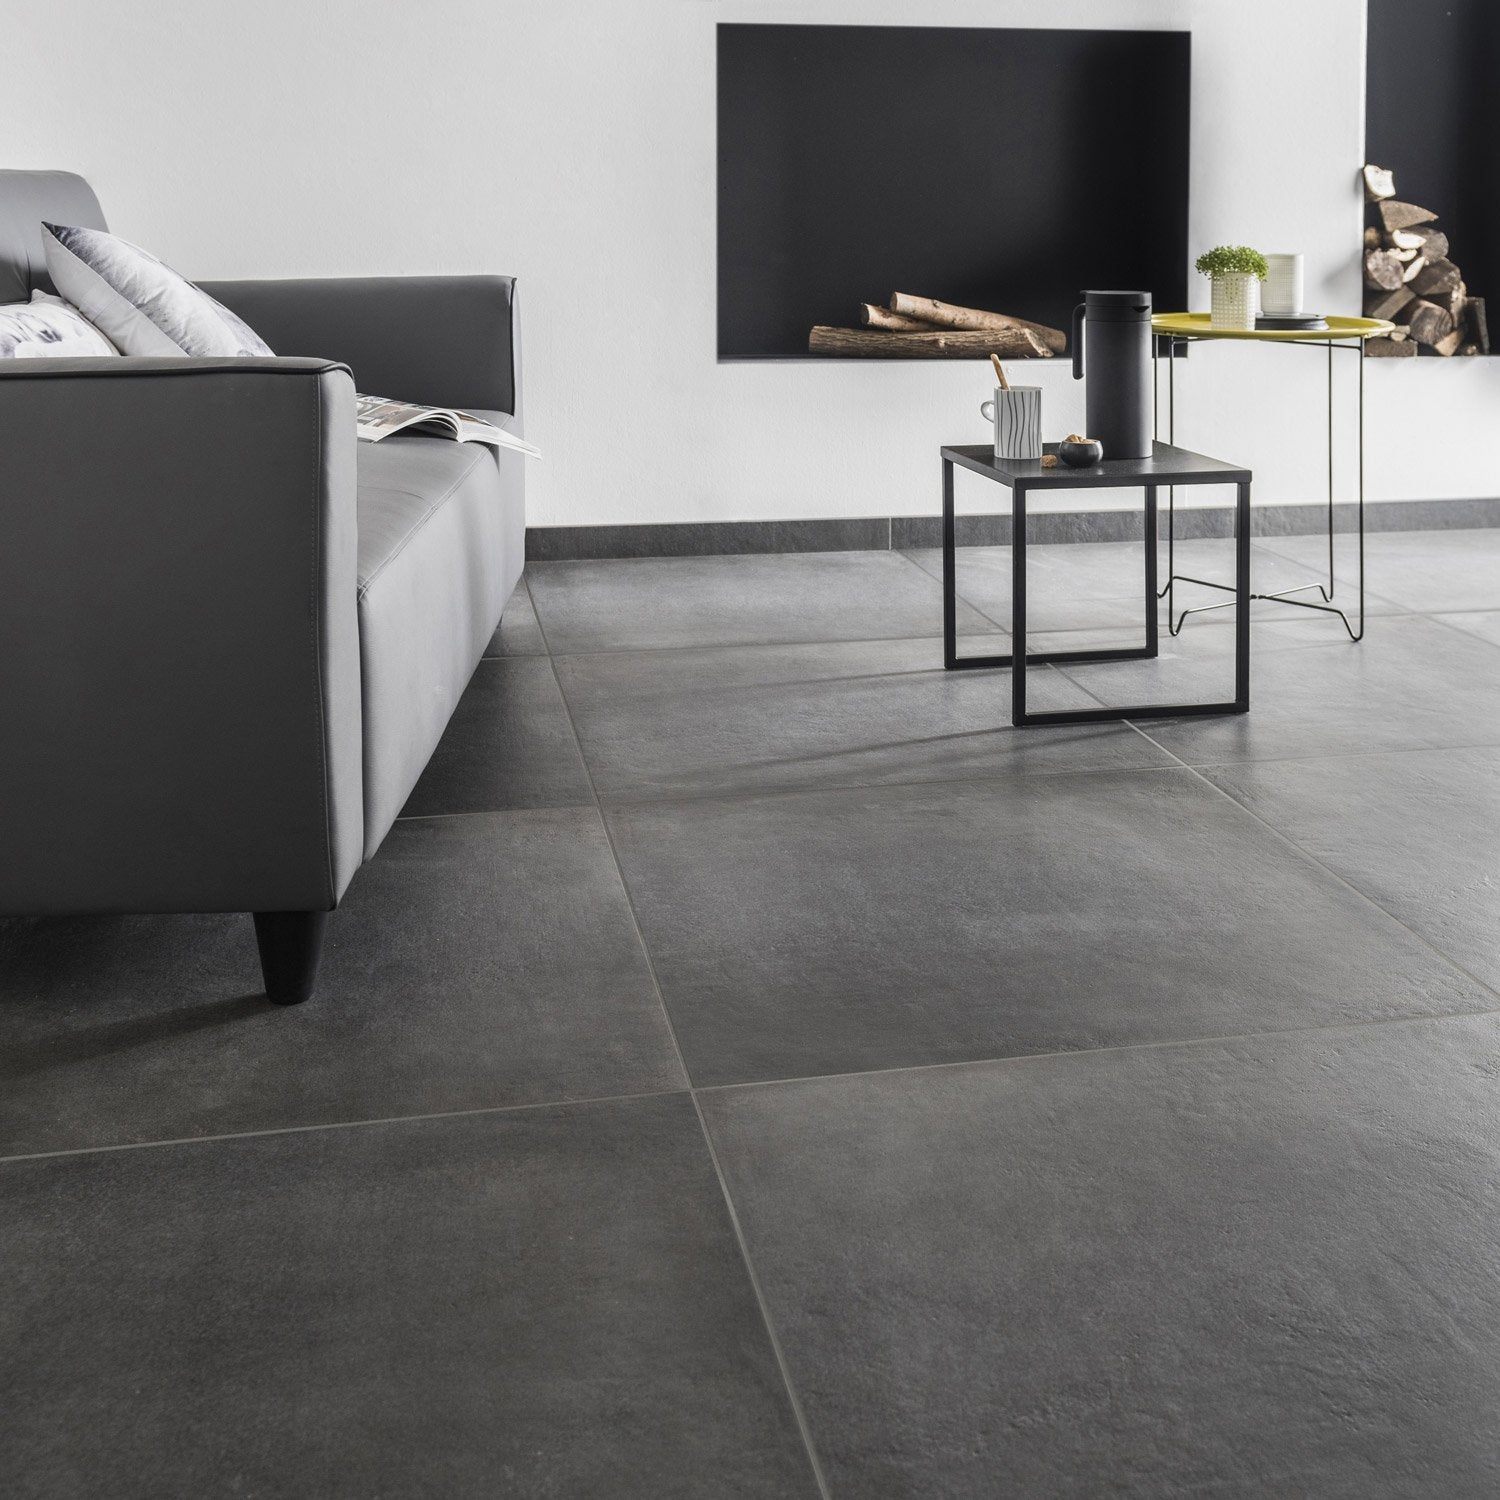 Carrelage sol et mur anthracite effet b ton time x l for Carrelage interieur gris anthracite